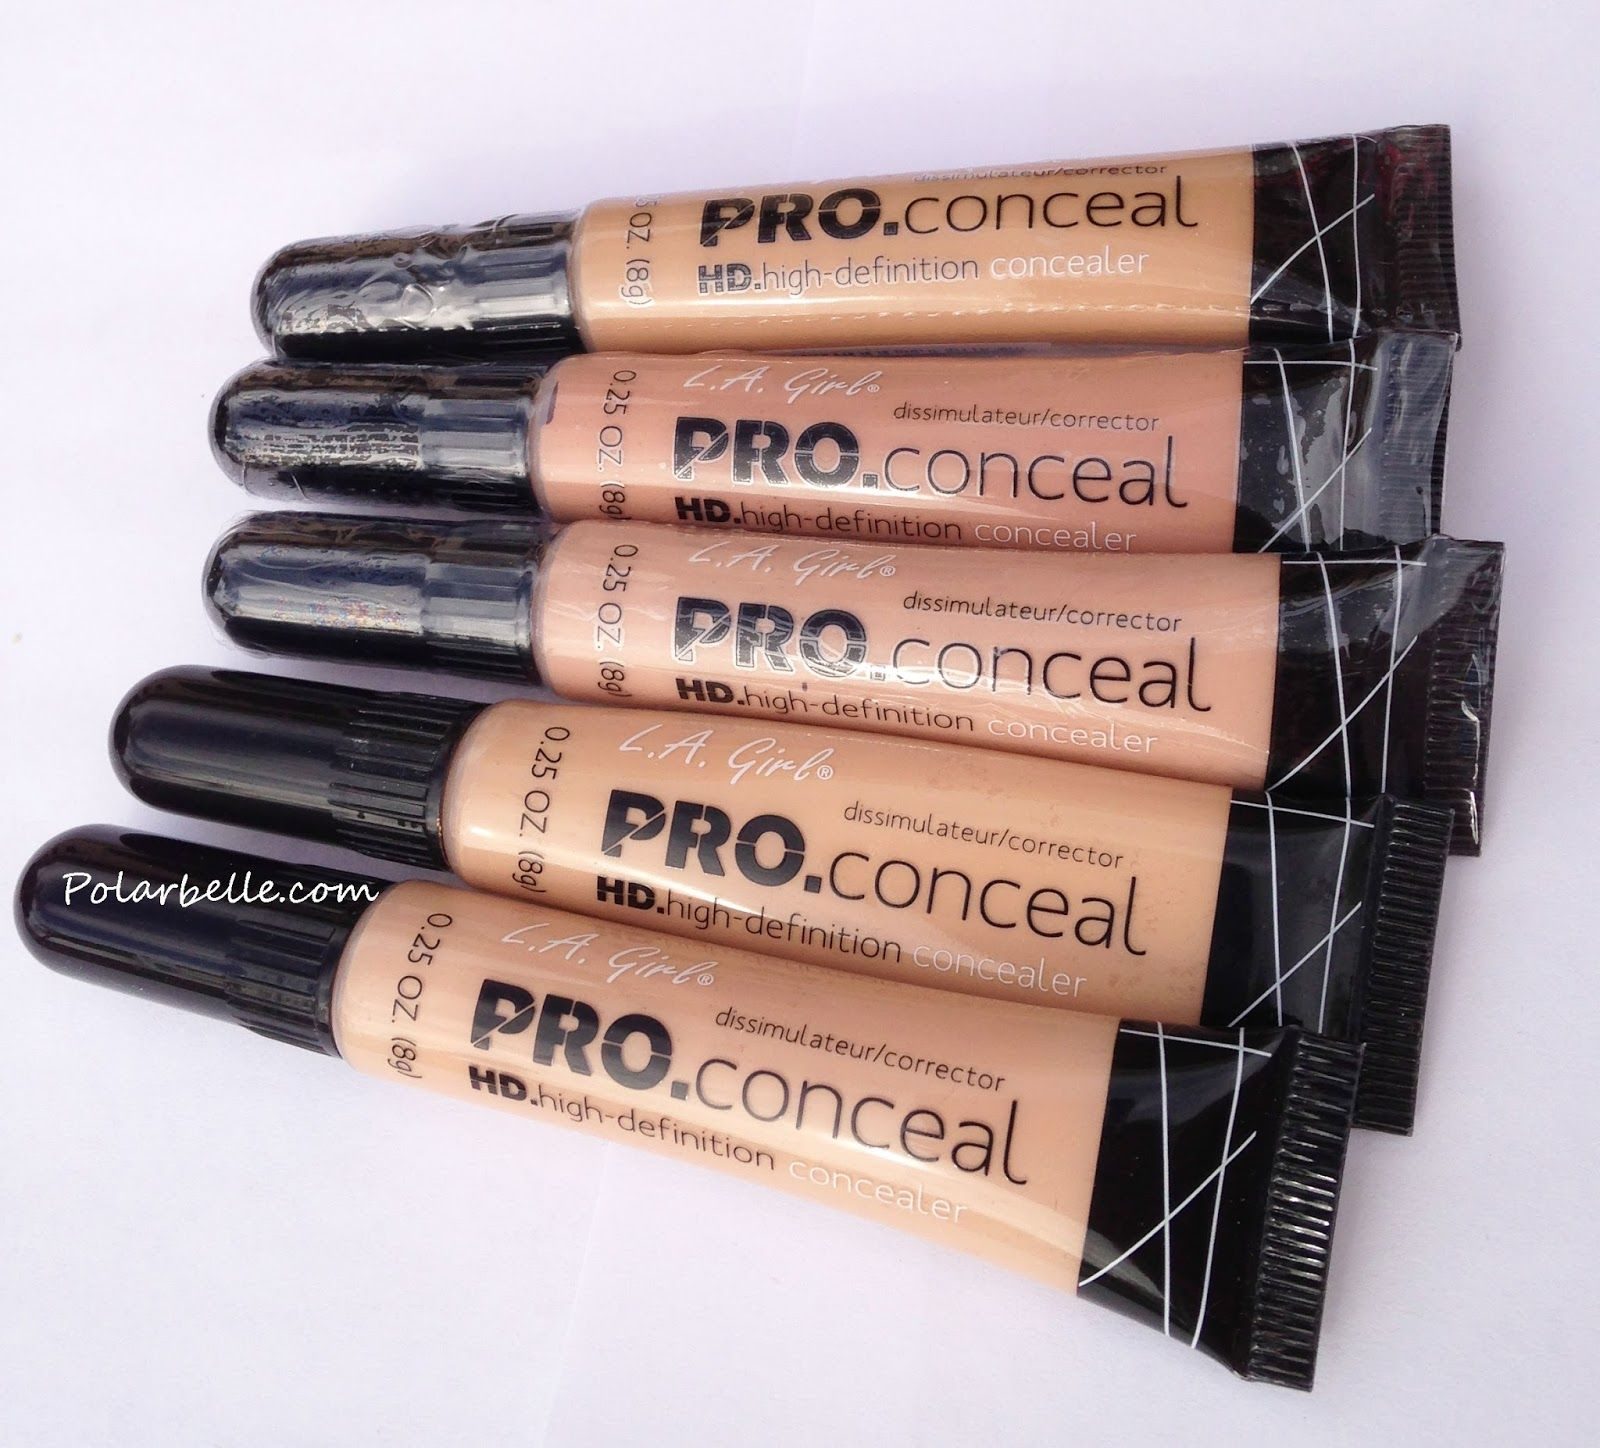 LA Girl Pro Conceal HD High Definition Concealer Swatches